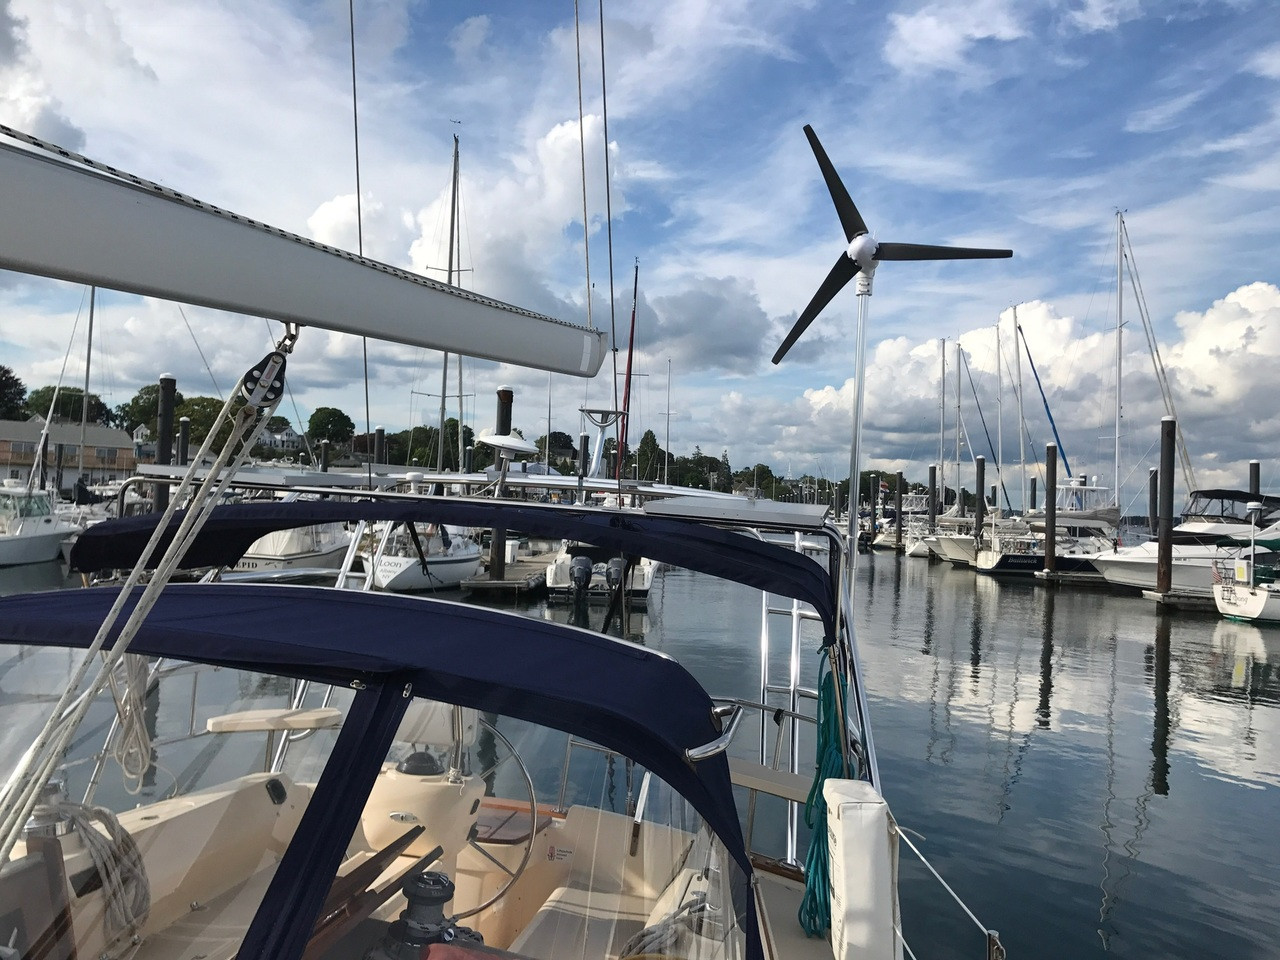 Arch-mounted Marine Kinetix MK4+ on Steve  Lazrove's sailboat.